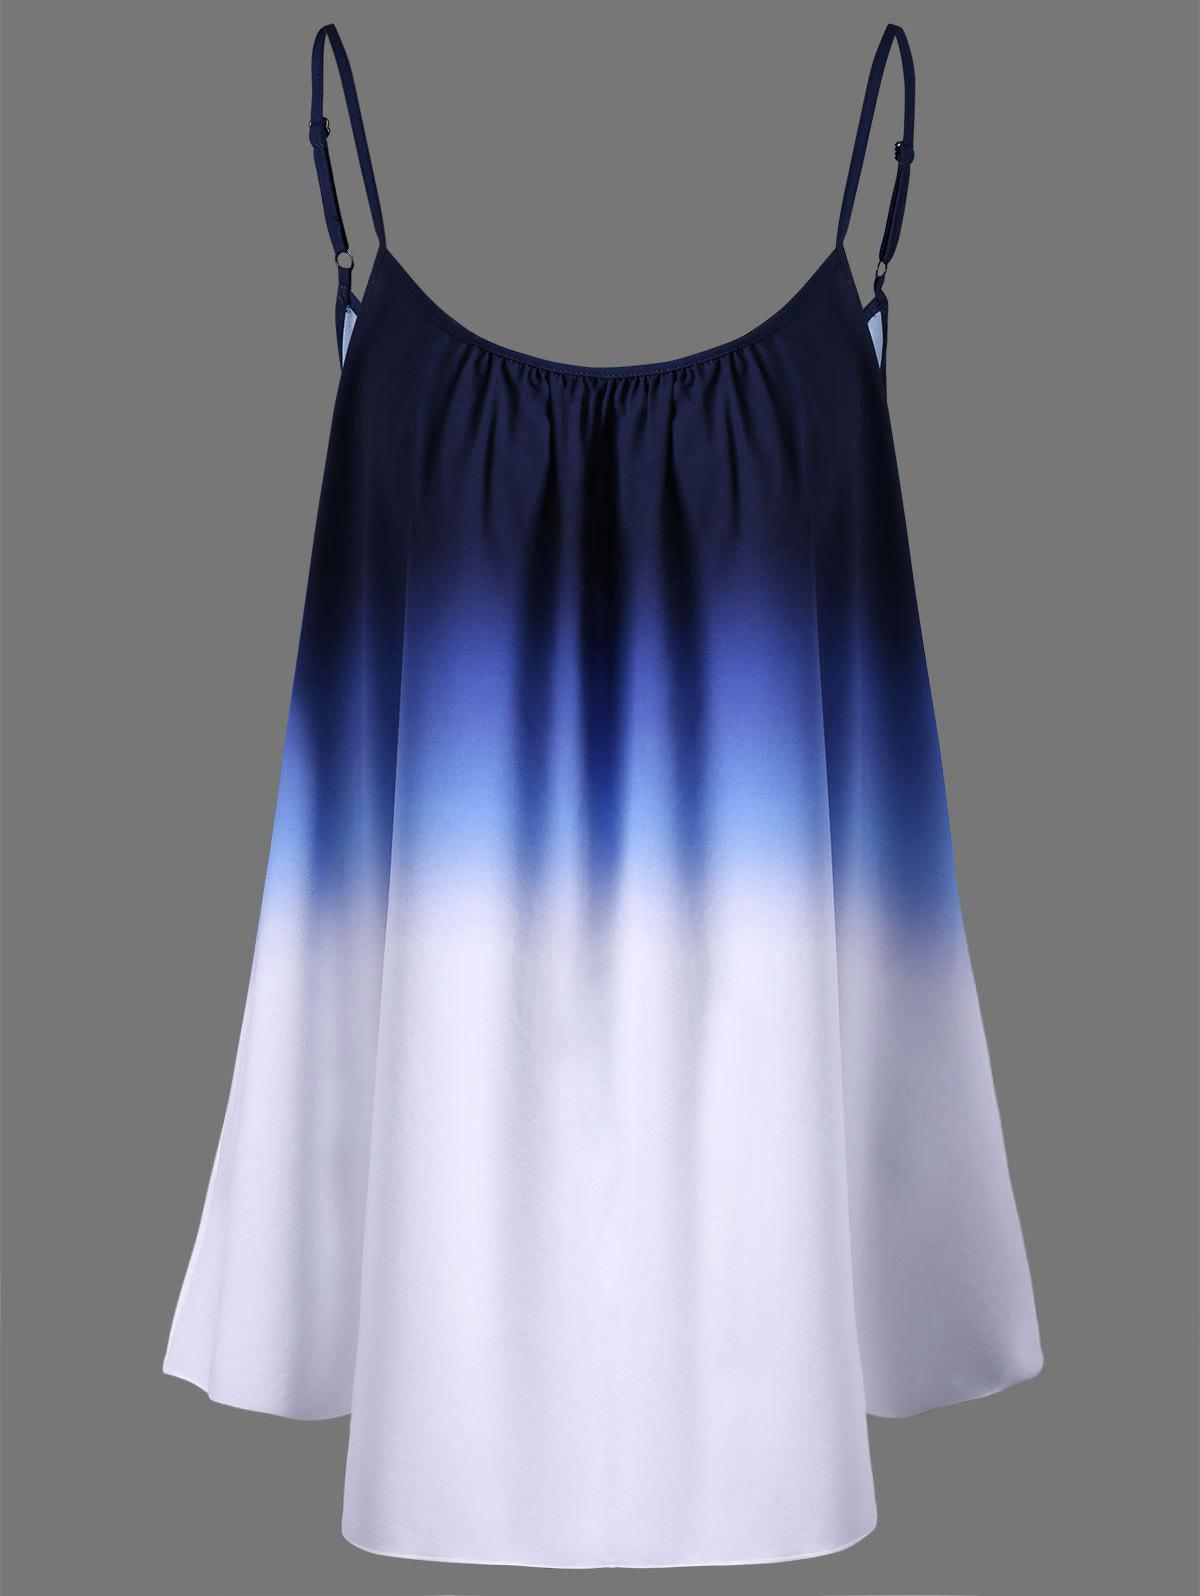 Ombre Plus Size Cami TopWOMEN<br><br>Size: 3XL; Color: BLUE; Material: Cotton,Cotton Blends,Polyester; Shirt Length: Regular; Sleeve Length: Sleeveless; Collar: Spaghetti Strap; Style: Fashion; Season: Spring,Summer; Pattern Type: Print; Weight: 0.1400kg; Package Contents: 1 x Top;